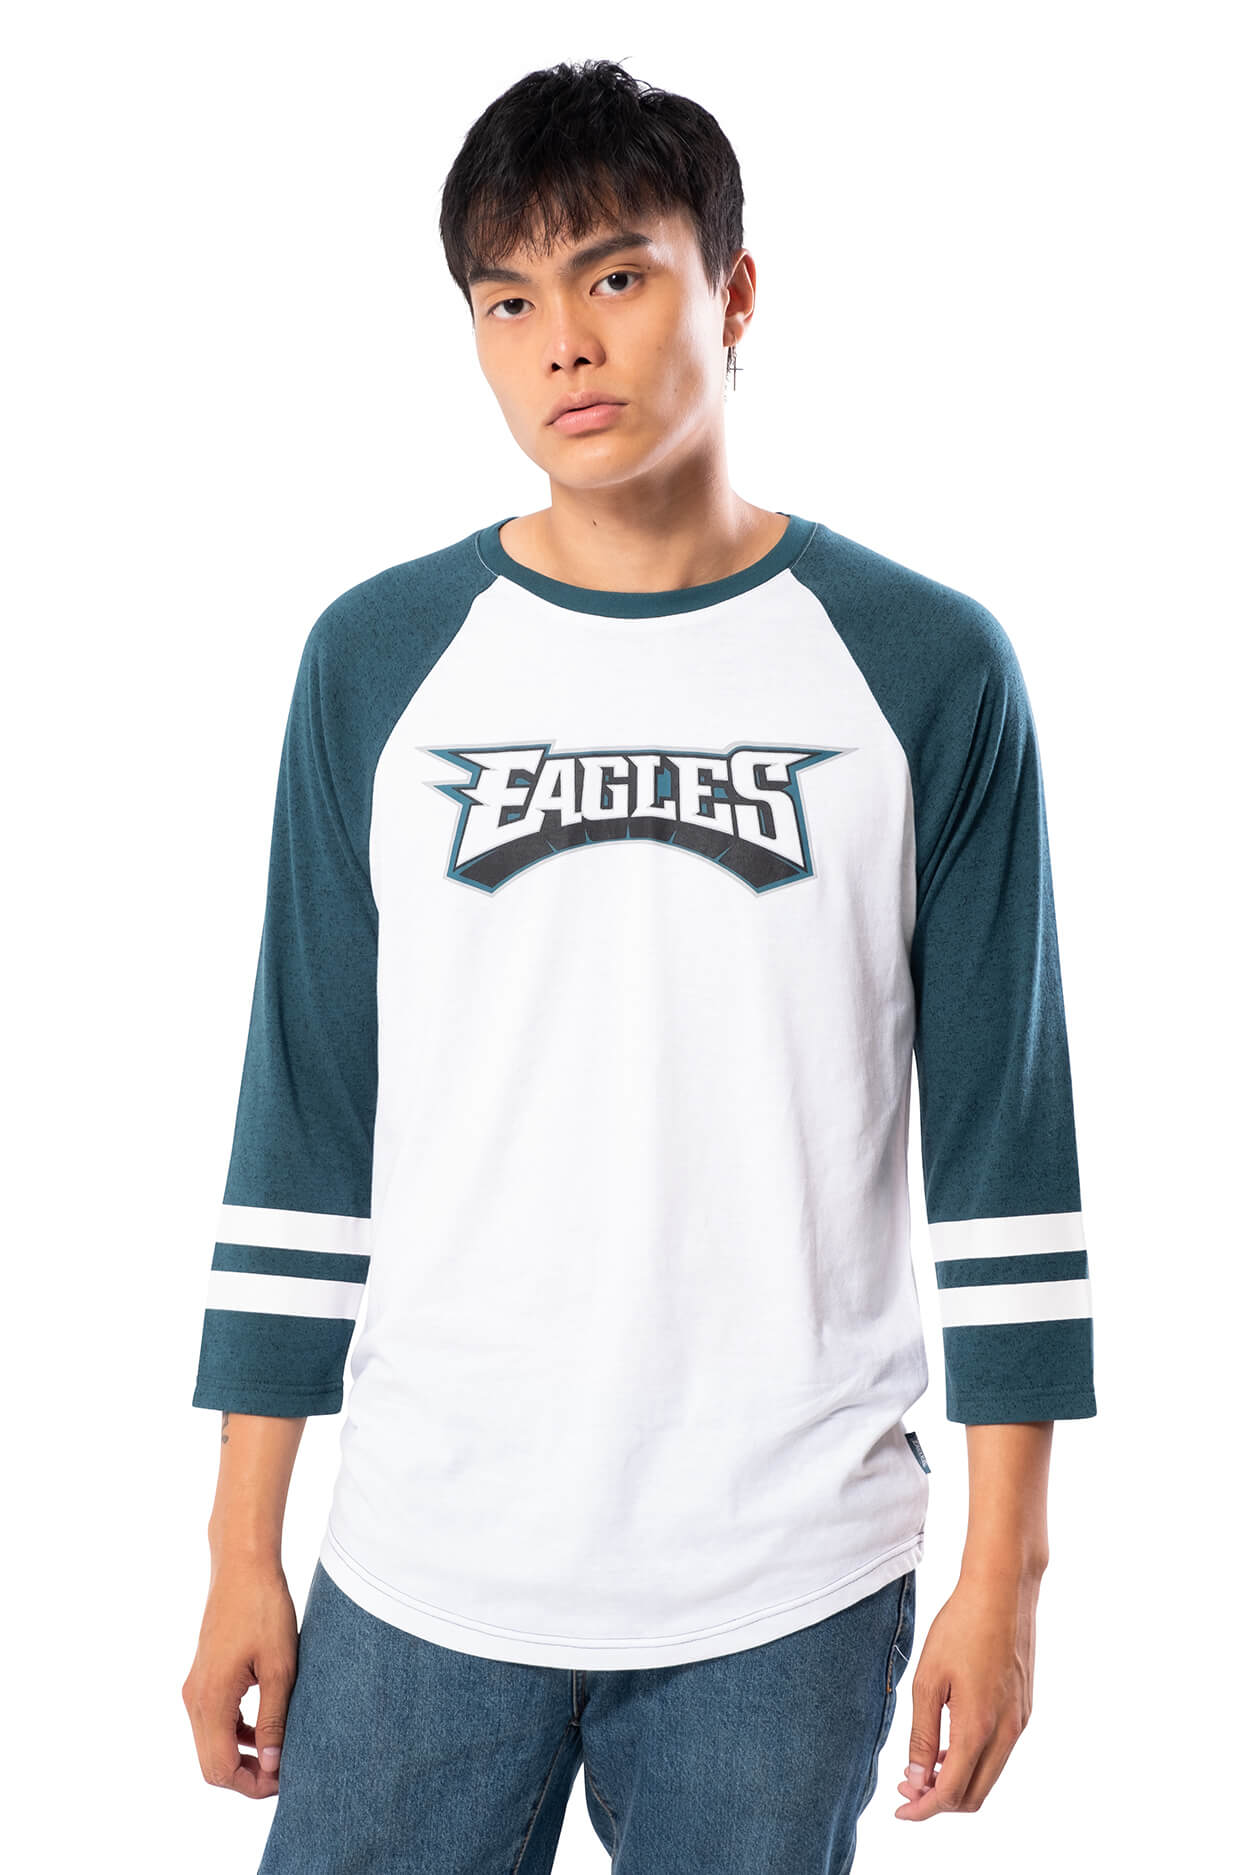 NFL Philadelphia Eagles Men's Baseball Tee|Philadelphia Eagles